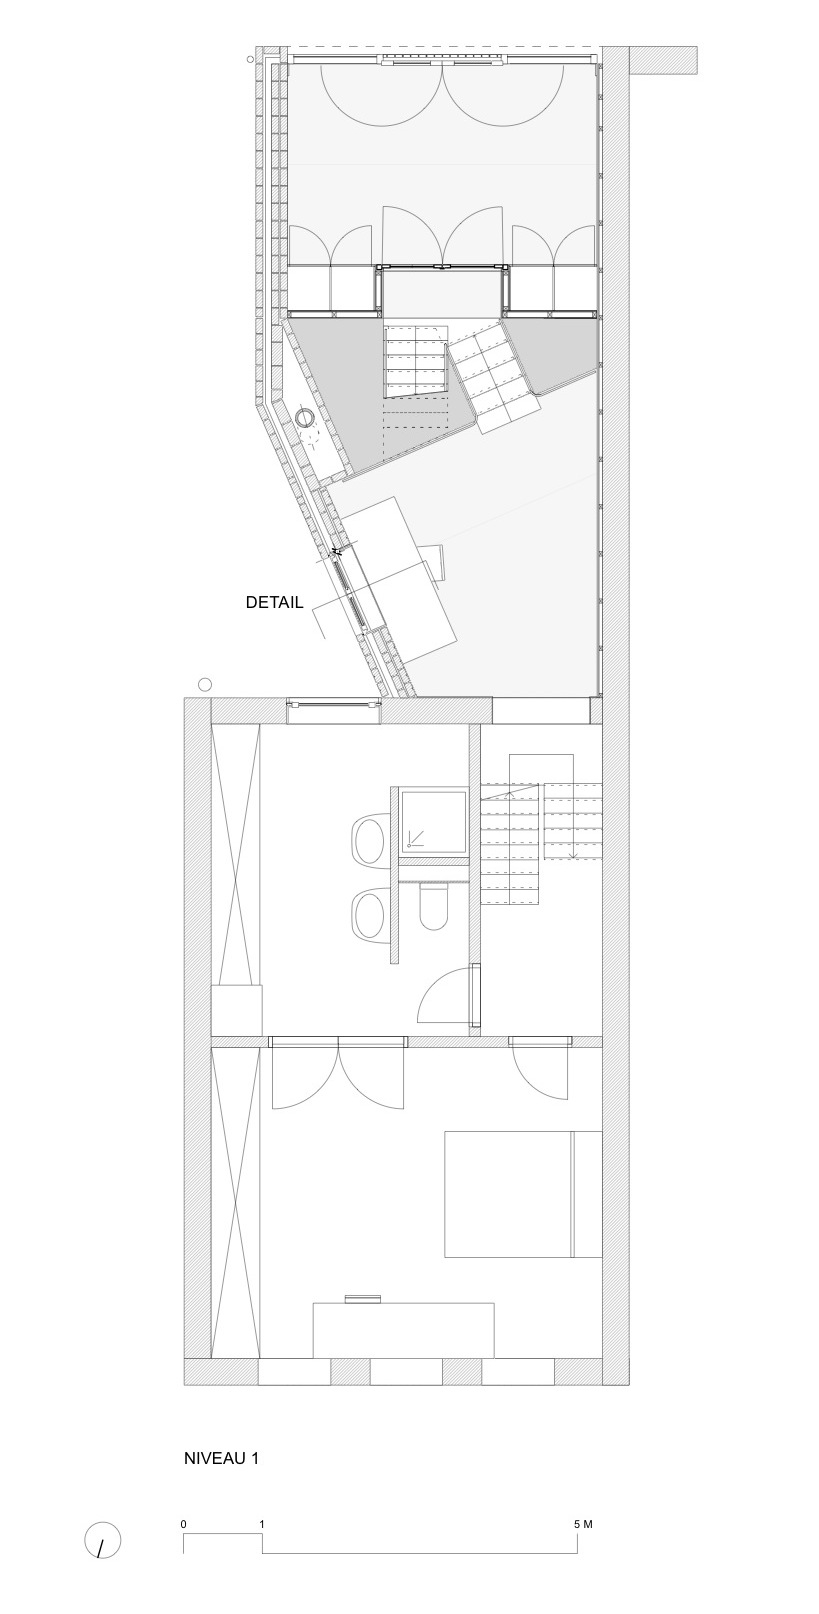 52307d4ce8e44e2601000138_house-extension-mortsel-bovenbow_mor_level1.png (819×1614)